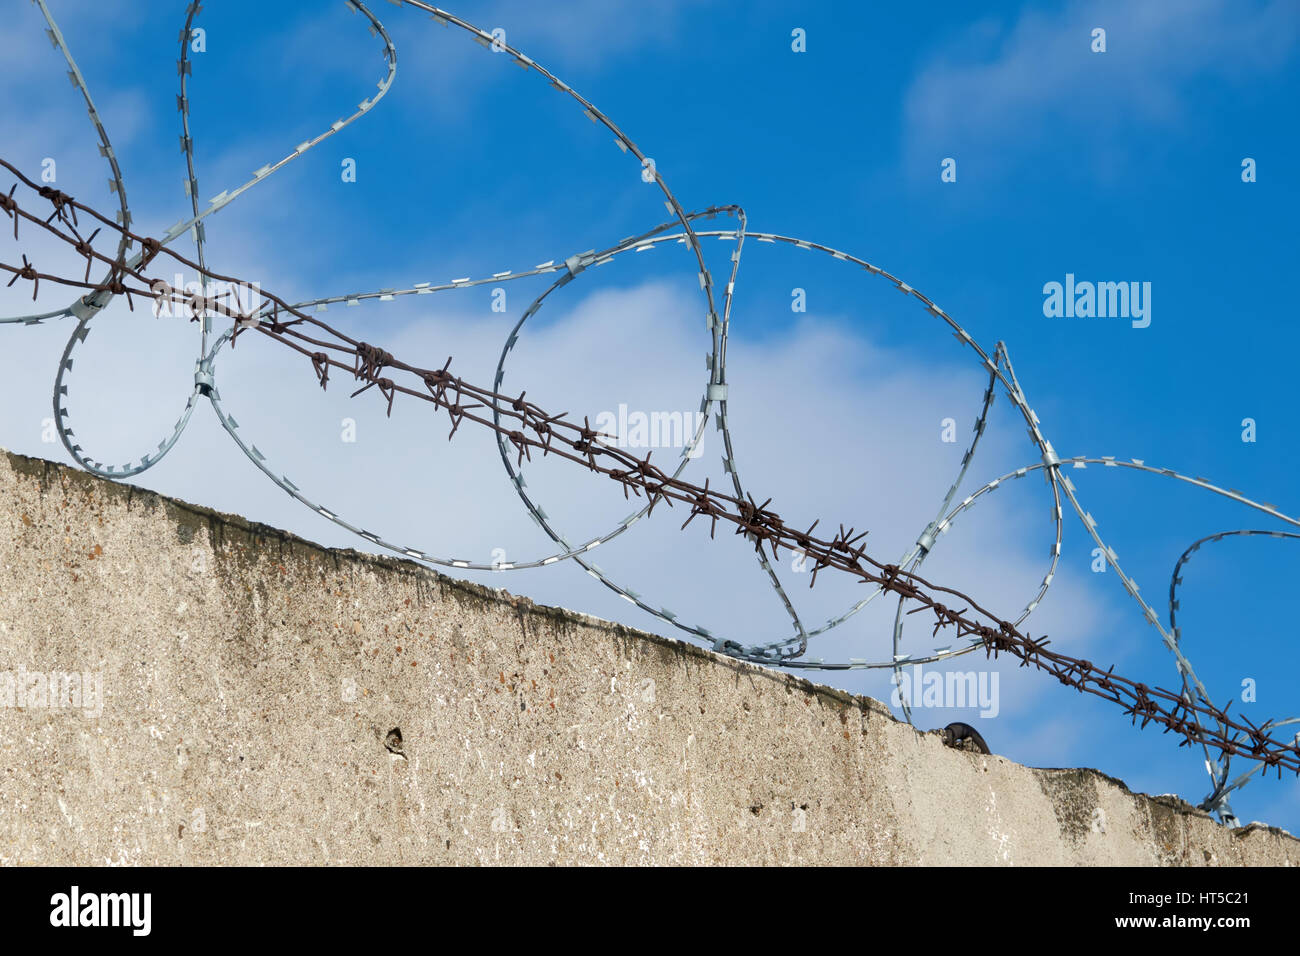 Fence with barbed wire. Blue sky. Clouds - Stock Image